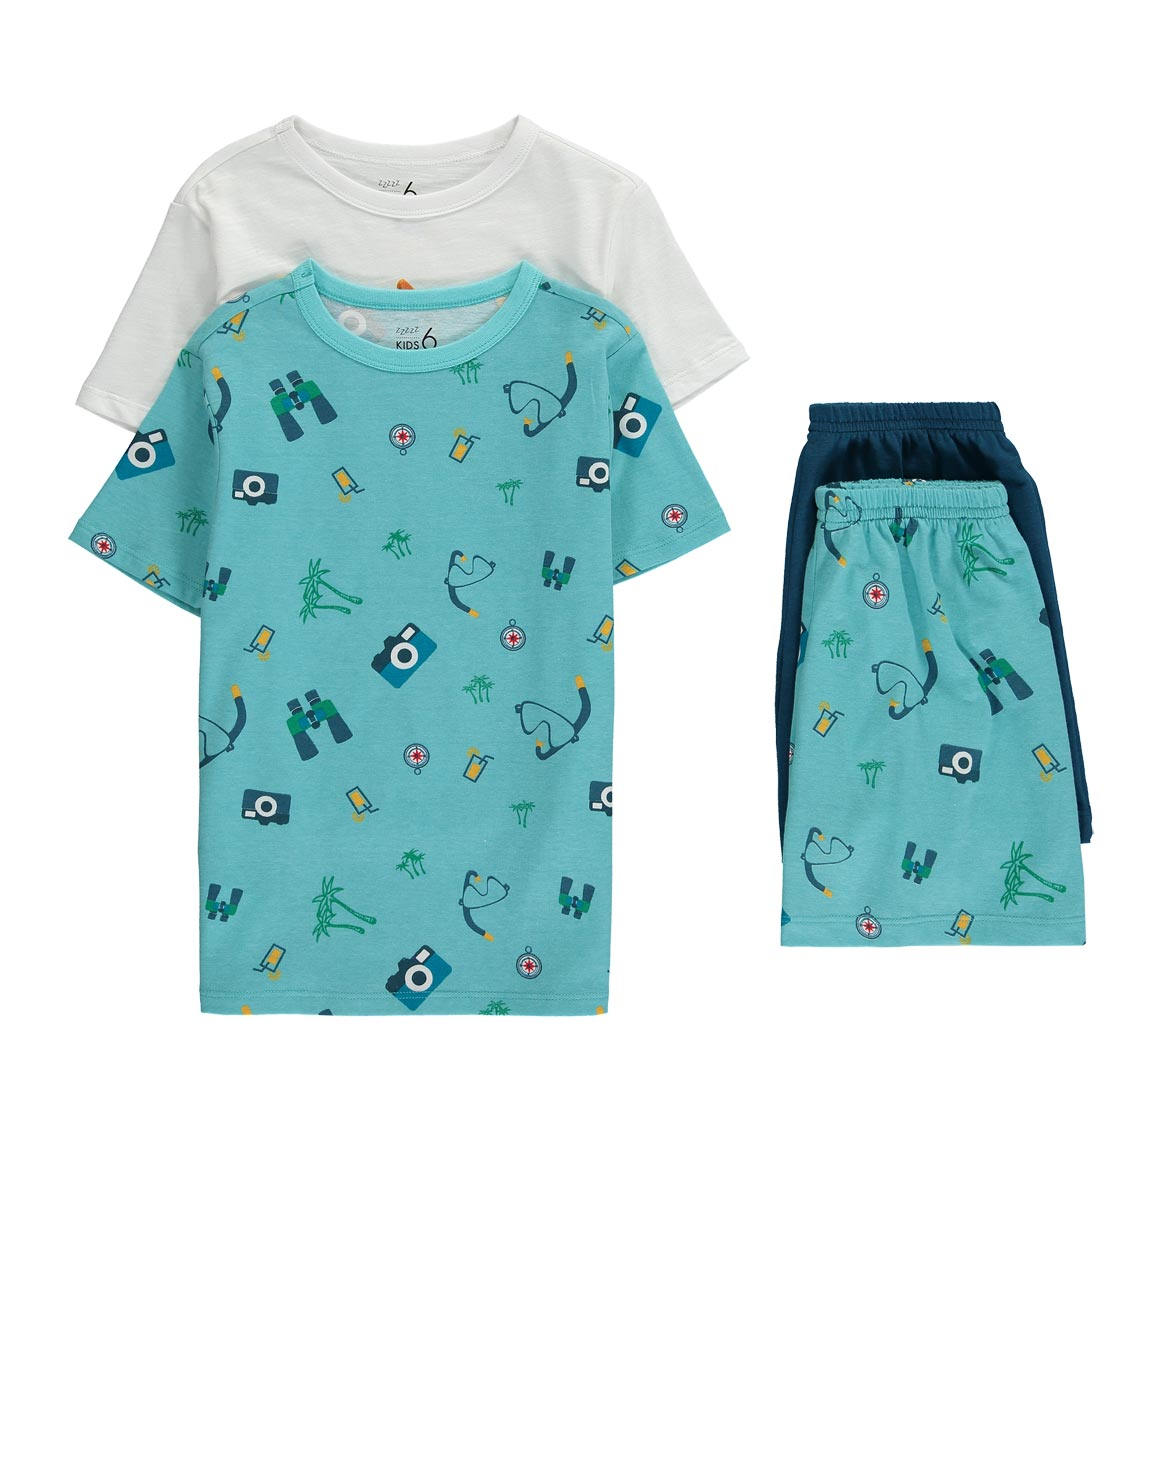 Buy Sleepwear for Boys Online at | Woolworths.co.za